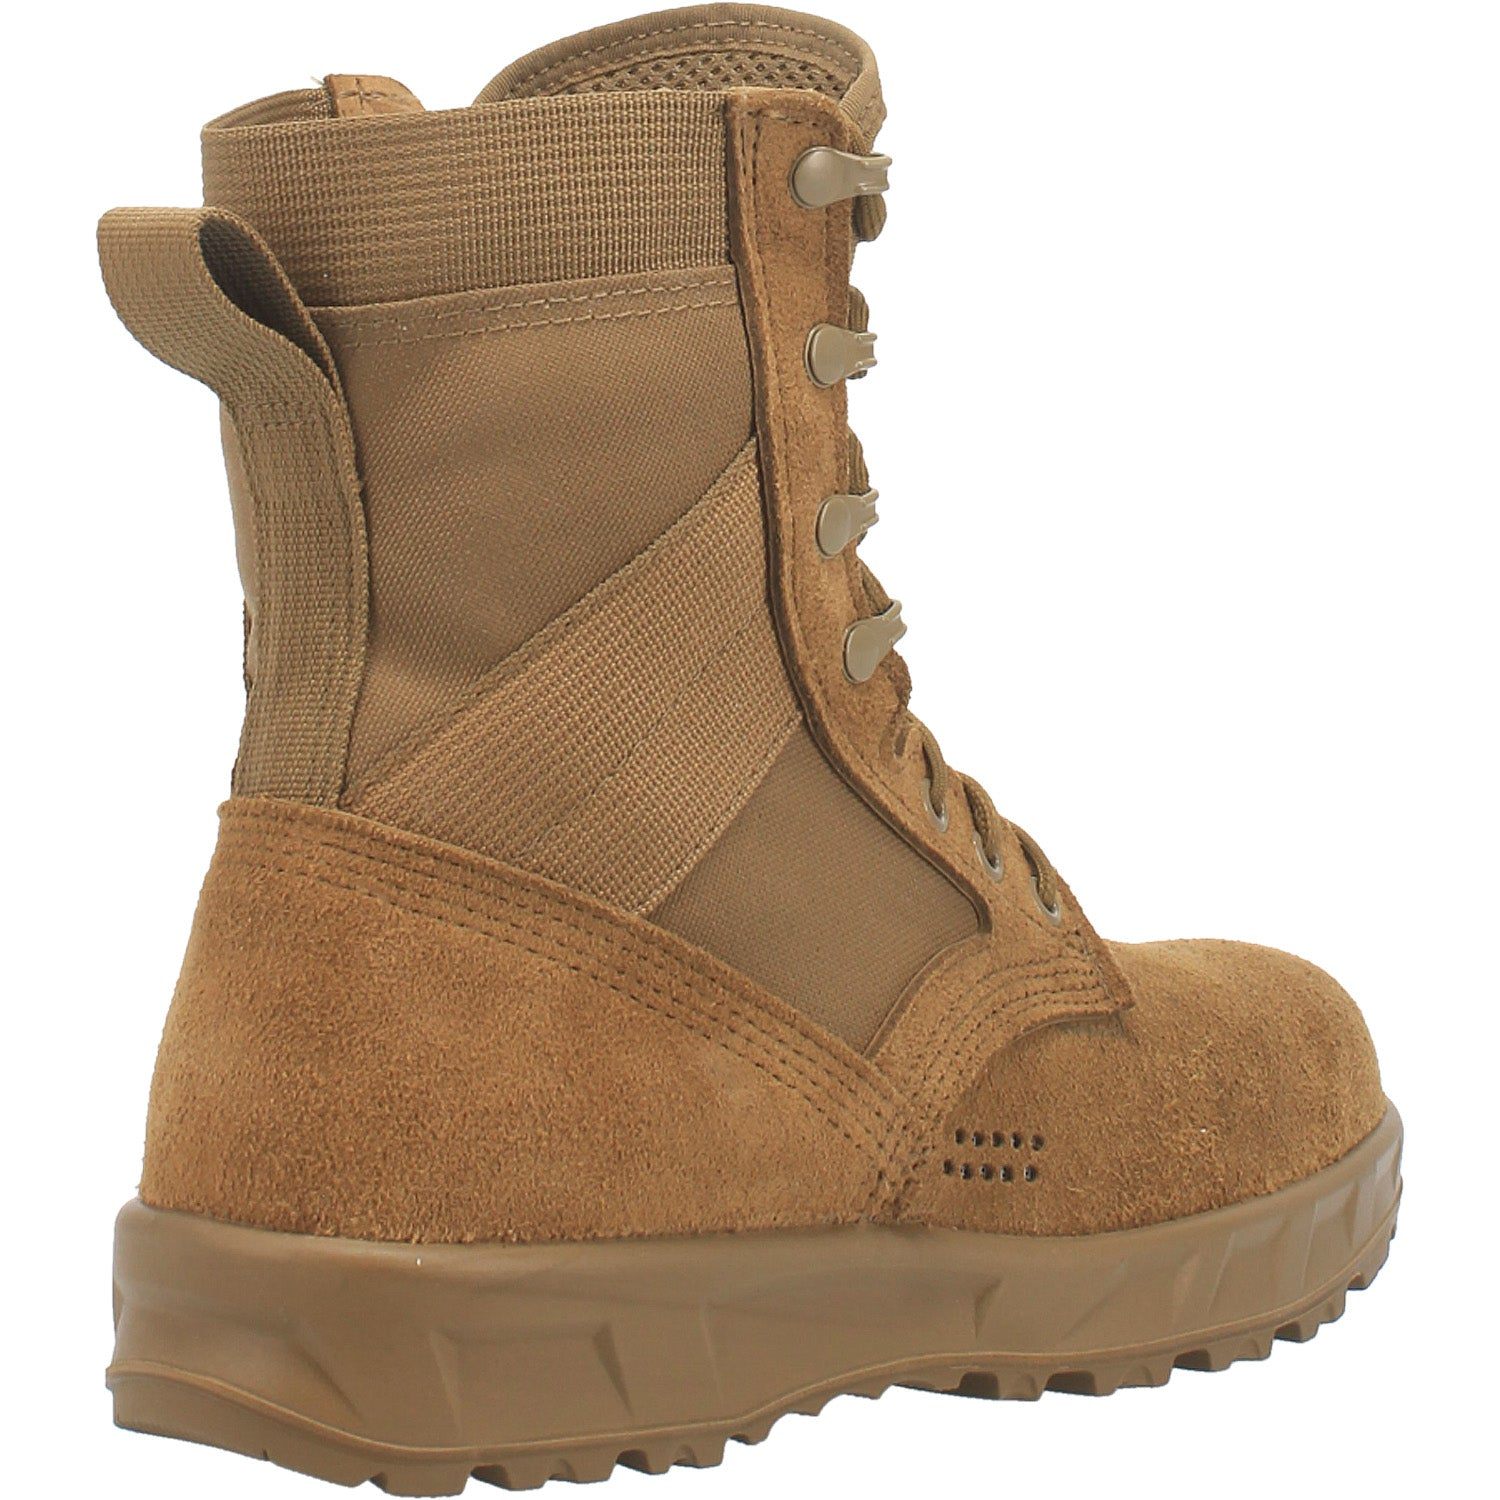 T2 Ultra Light Hot Weather Combat Boot 14940793110570